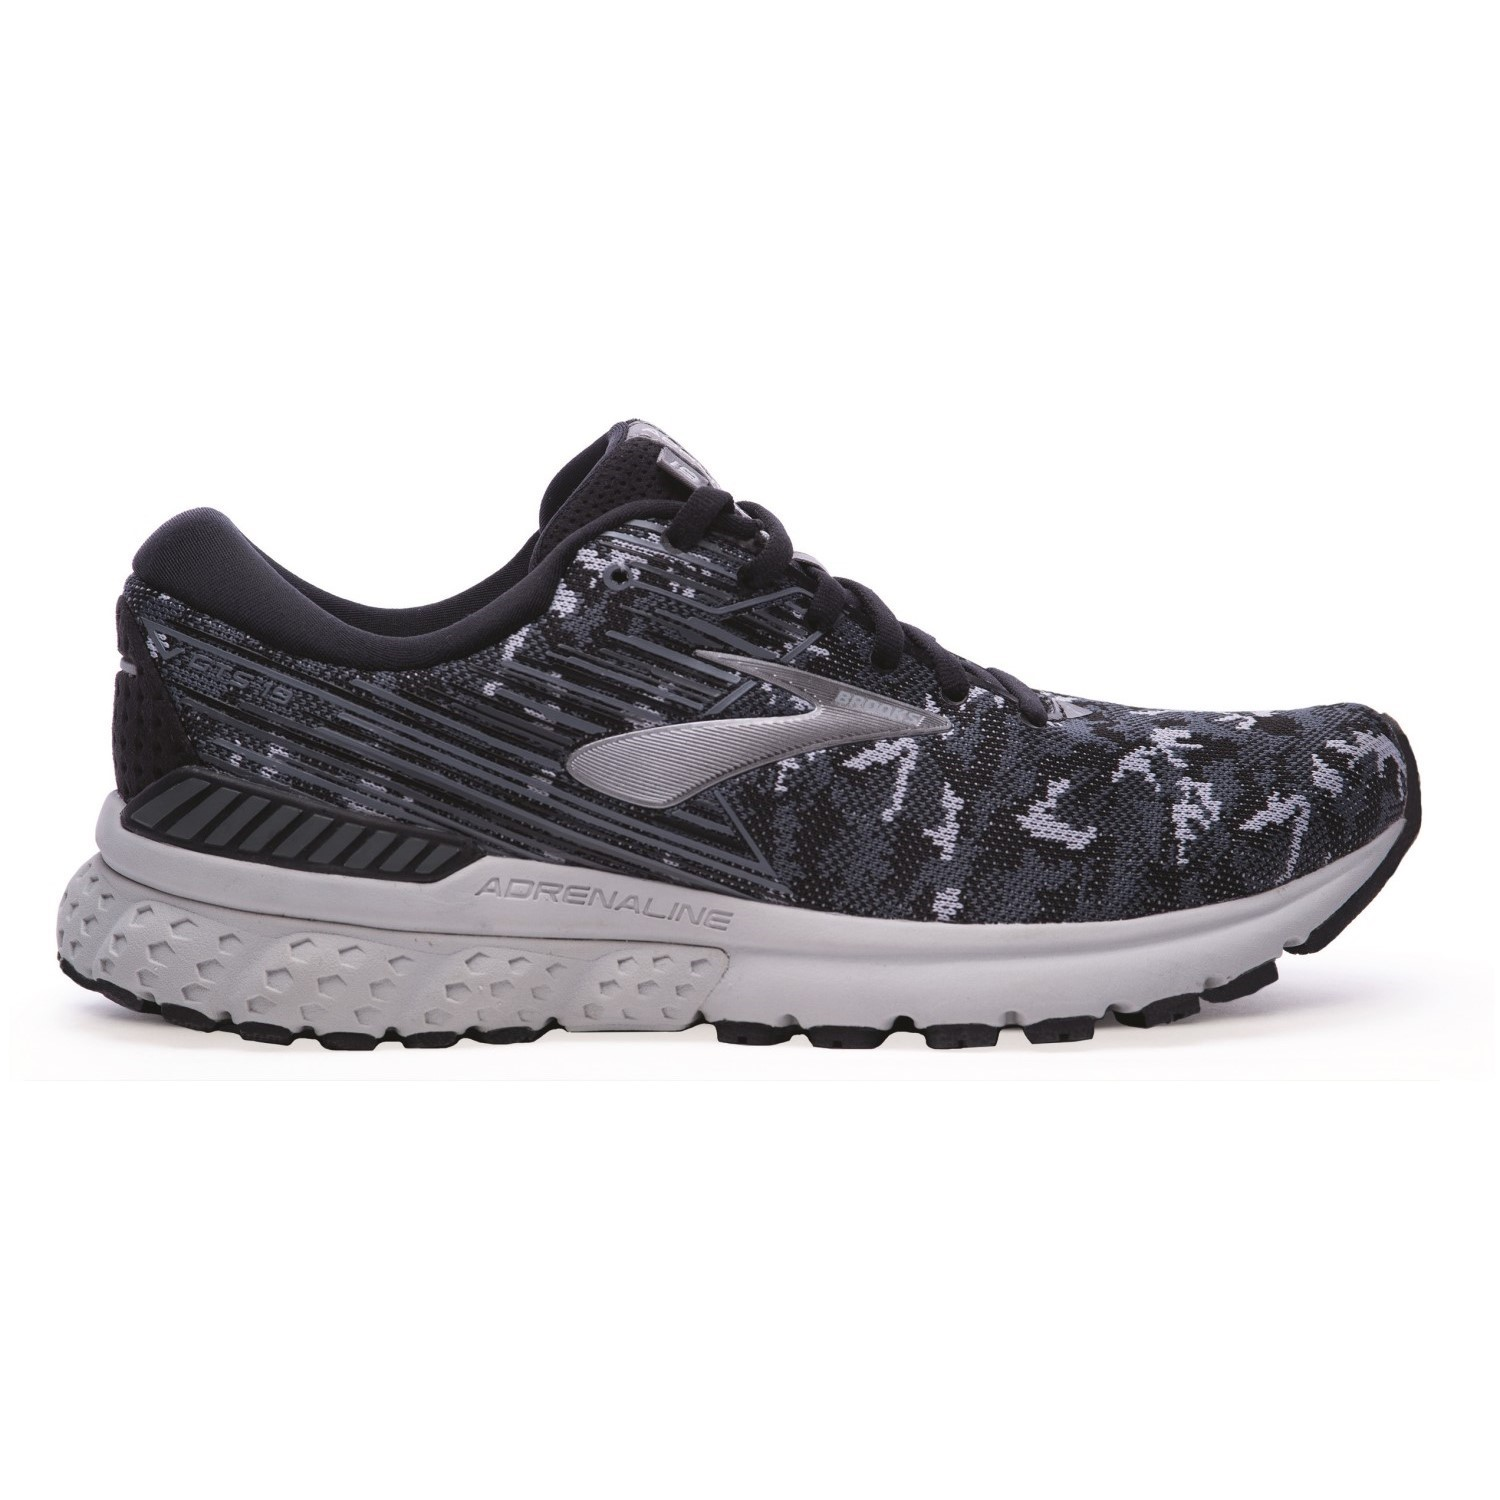 262a2b2dcb9 Brooks Adrenaline GTS 19 LE Camo Pack - Mens Running Shoes - Black Grey